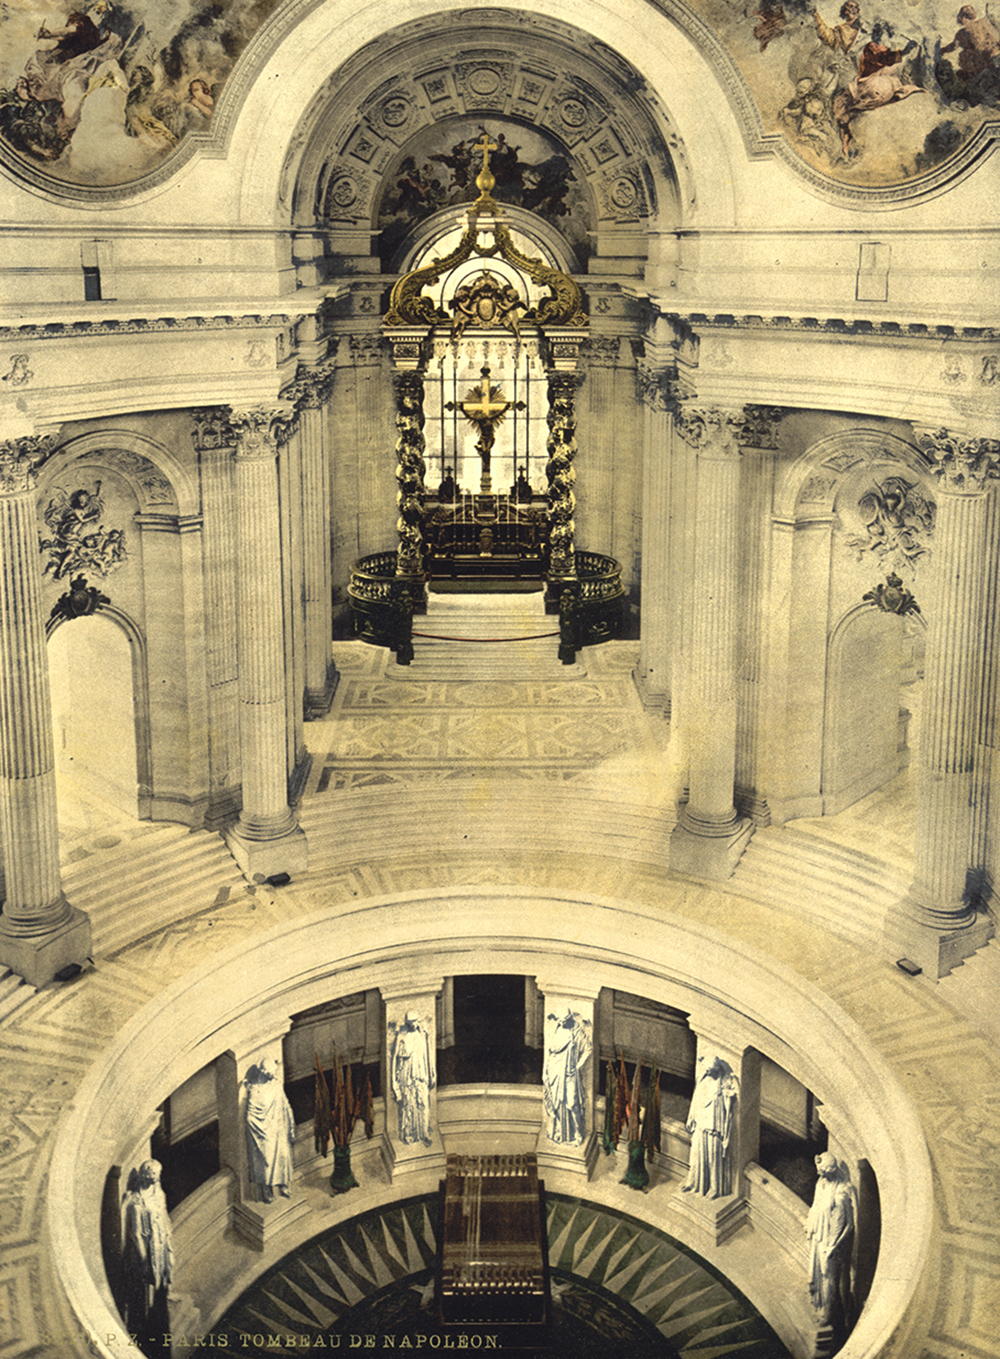 Napoleon's tomb, c. 1890. Photograph by Detroit Publishing Co. Library of Congress, Prints and Photographs Division.